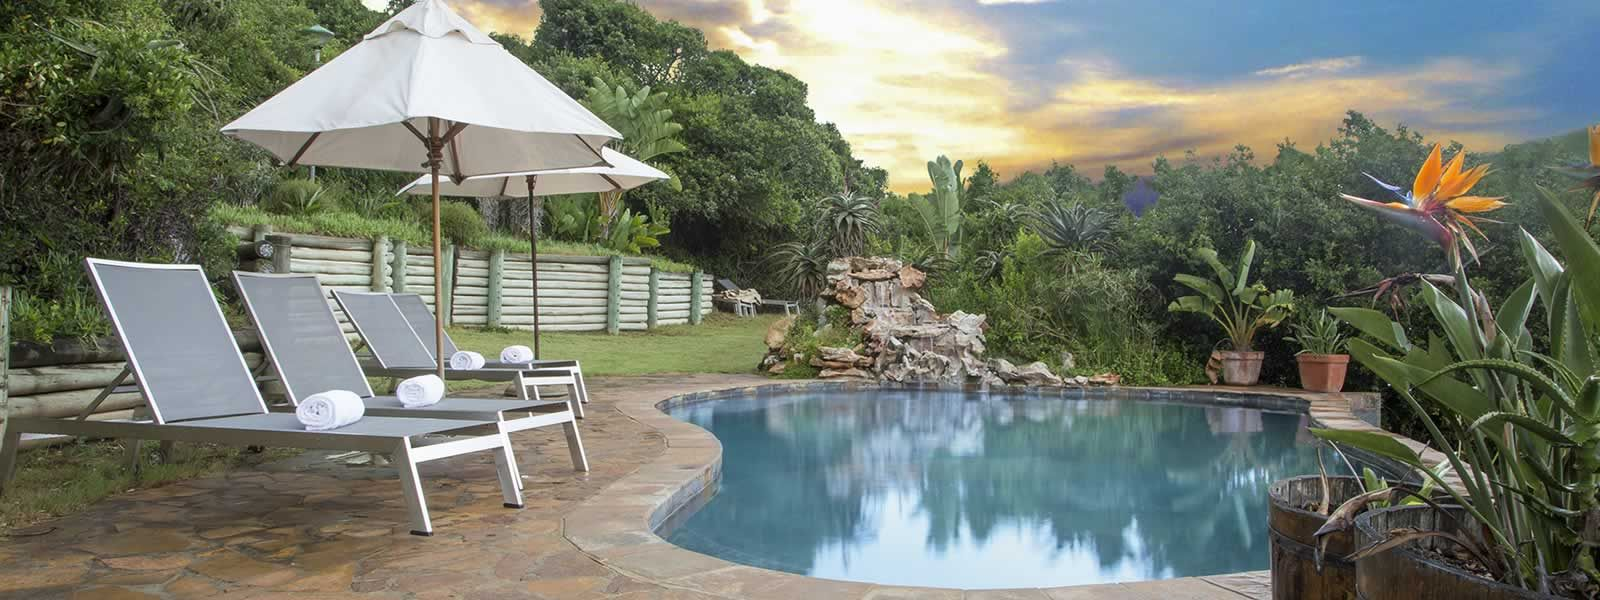 Thunzi Bush Lodge is located in the tranquil sanctuary of